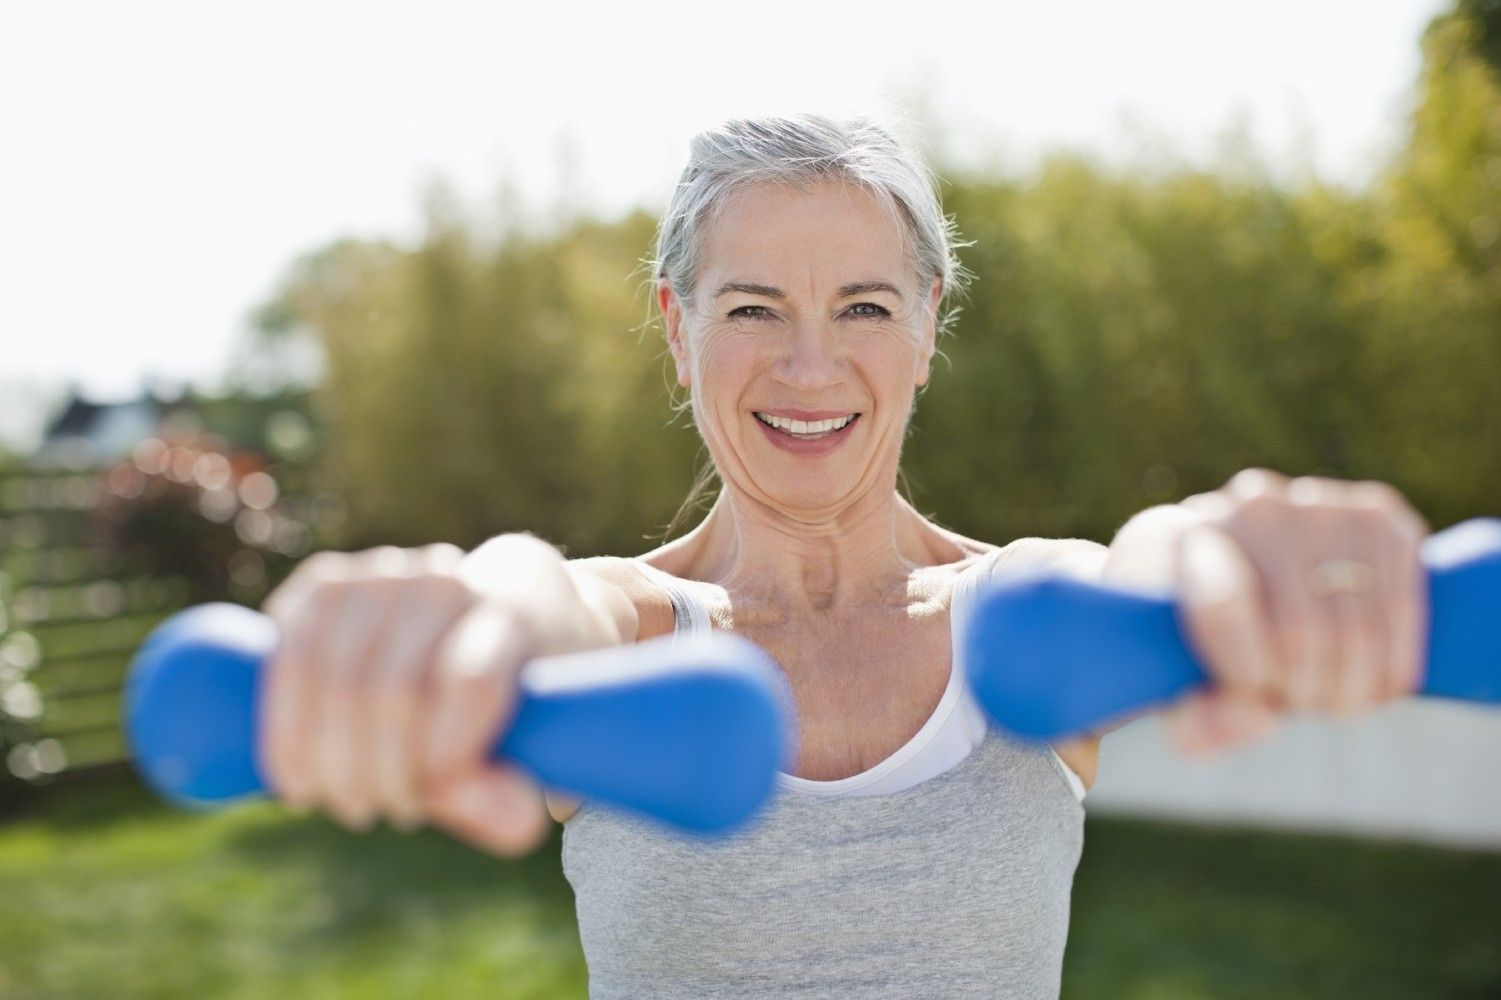 Exercise and Sickness  #Exercise, #Fitness, #Health, #HealthAndFitness, #PhysicalFitness, #Weight, #...